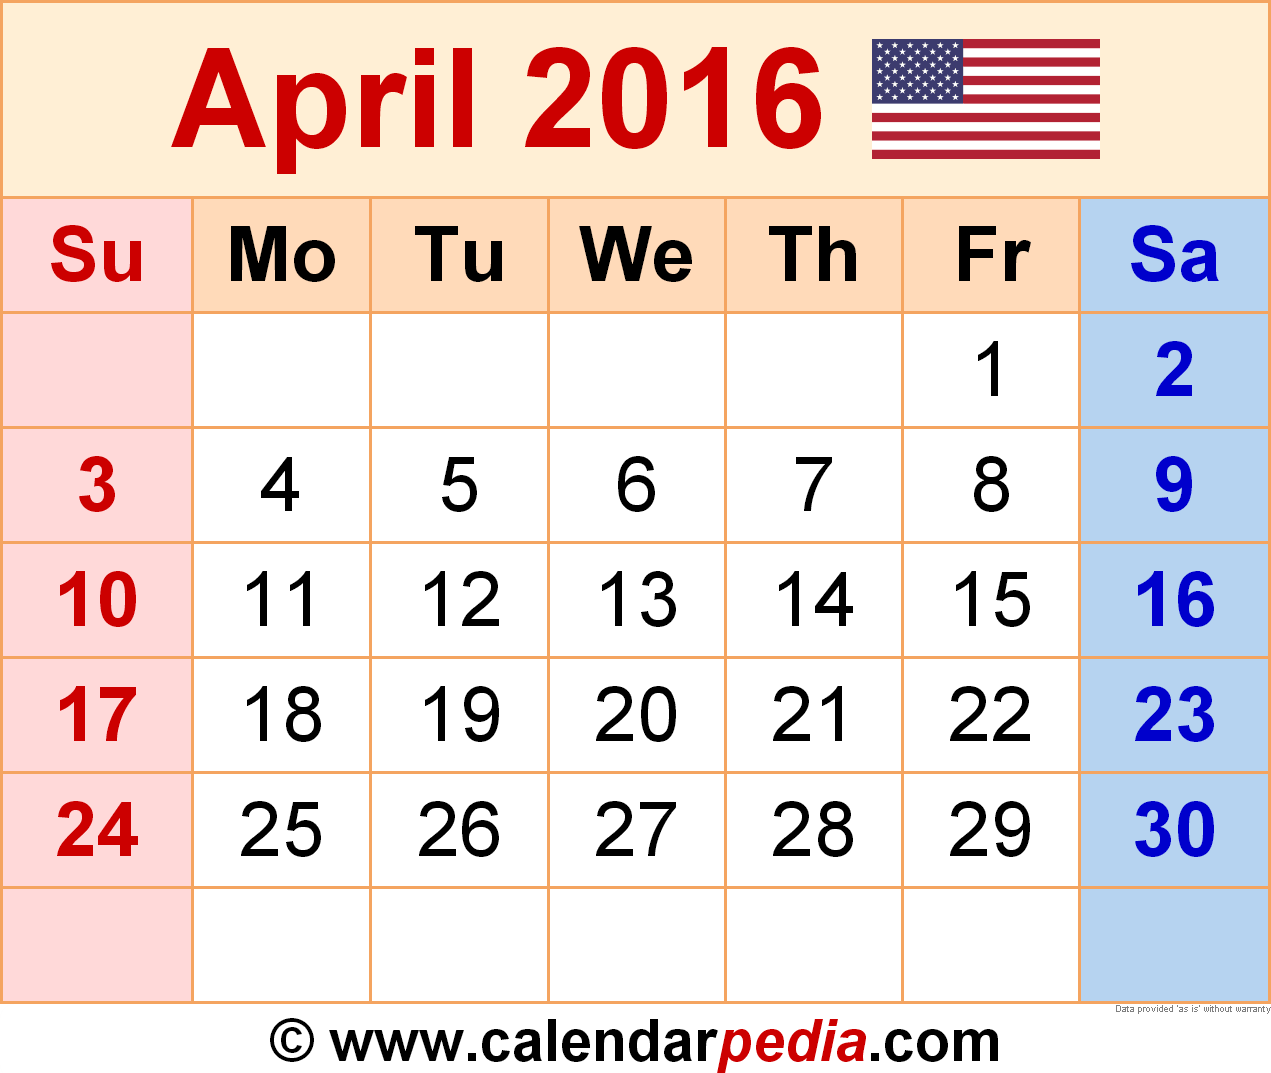 April 2016 Calendar Printable June